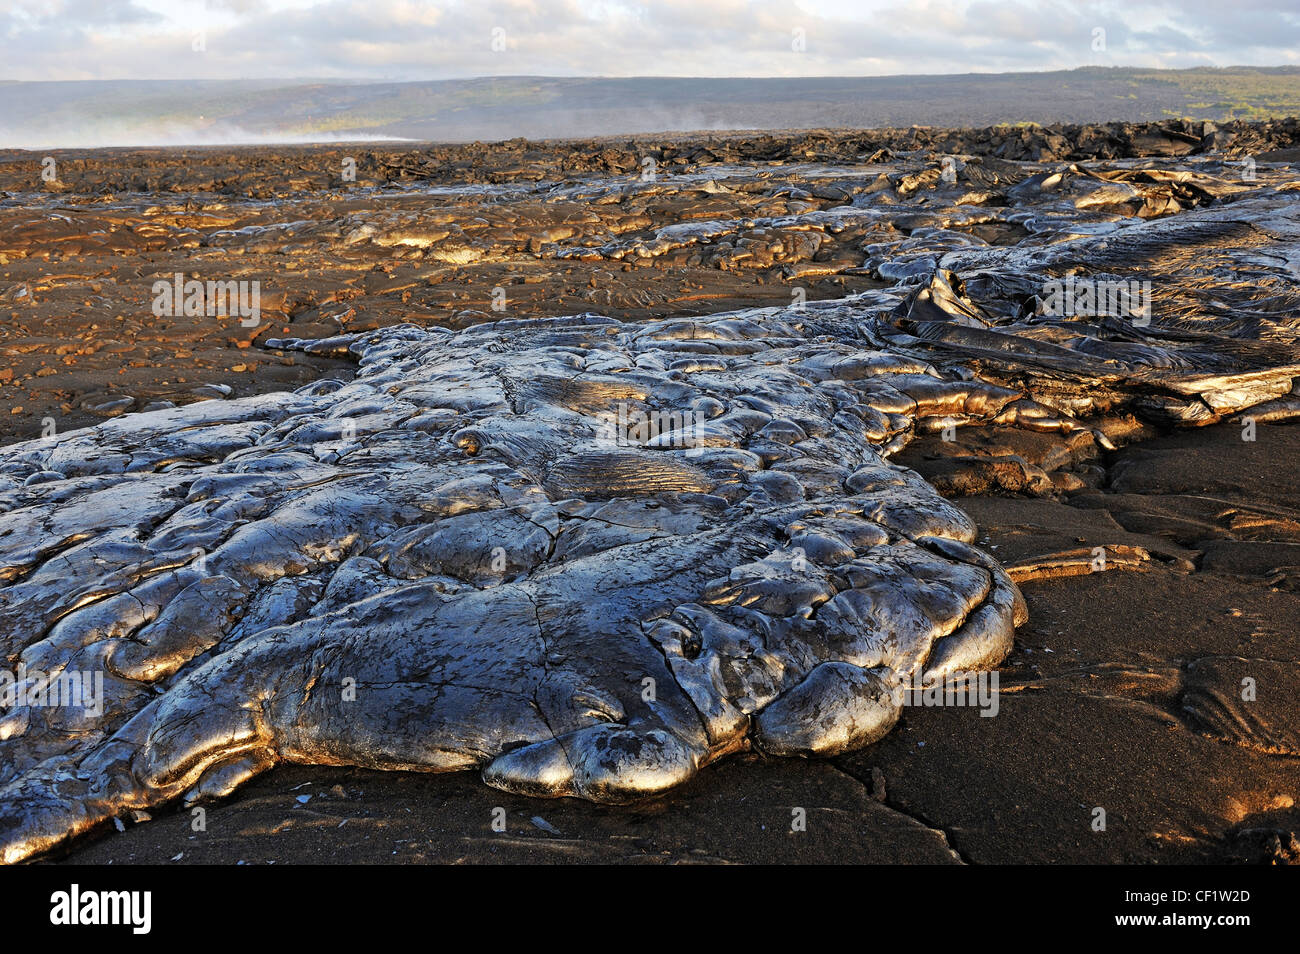 Gekühlt Pahoehoe Lava Flow, Kilauea-Vulkan, Big Island, Hawaii Volcanoes Nationalpark, USA Stockbild